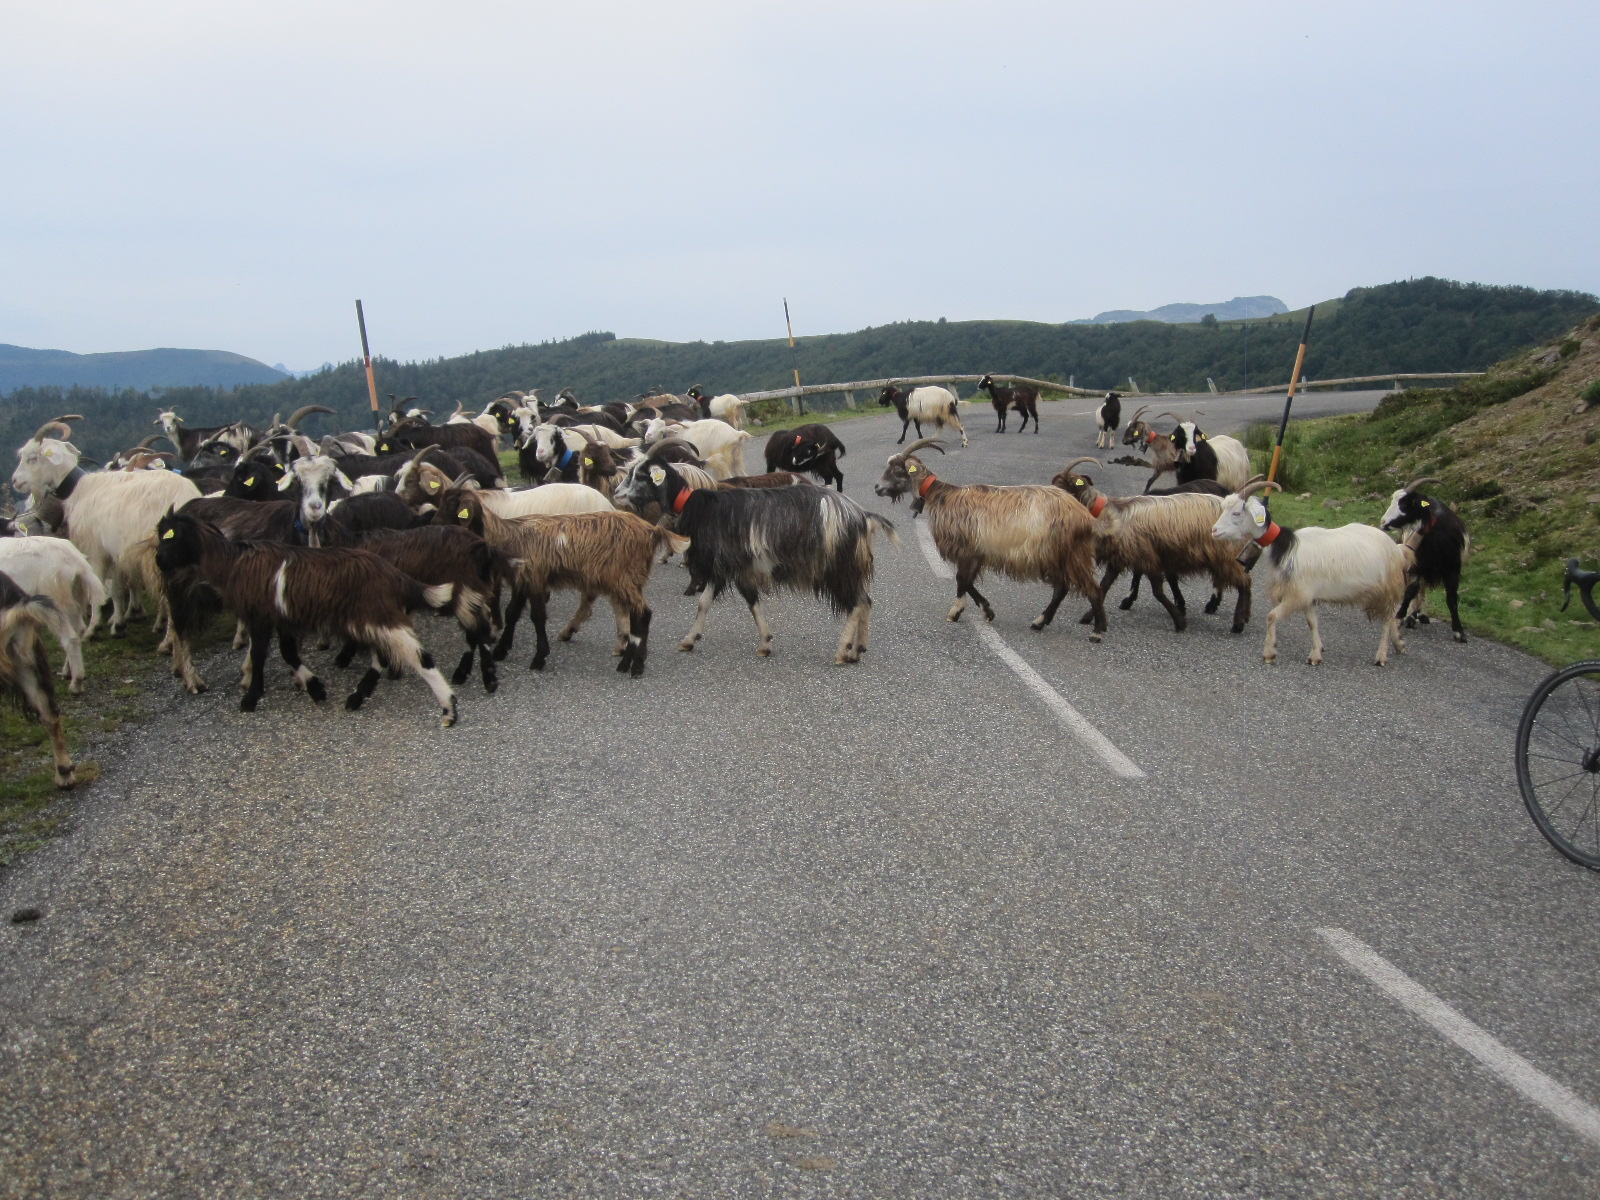 Roads are to be shared. Pyrenees roads can be pretty busy, but not usually with vehicles!